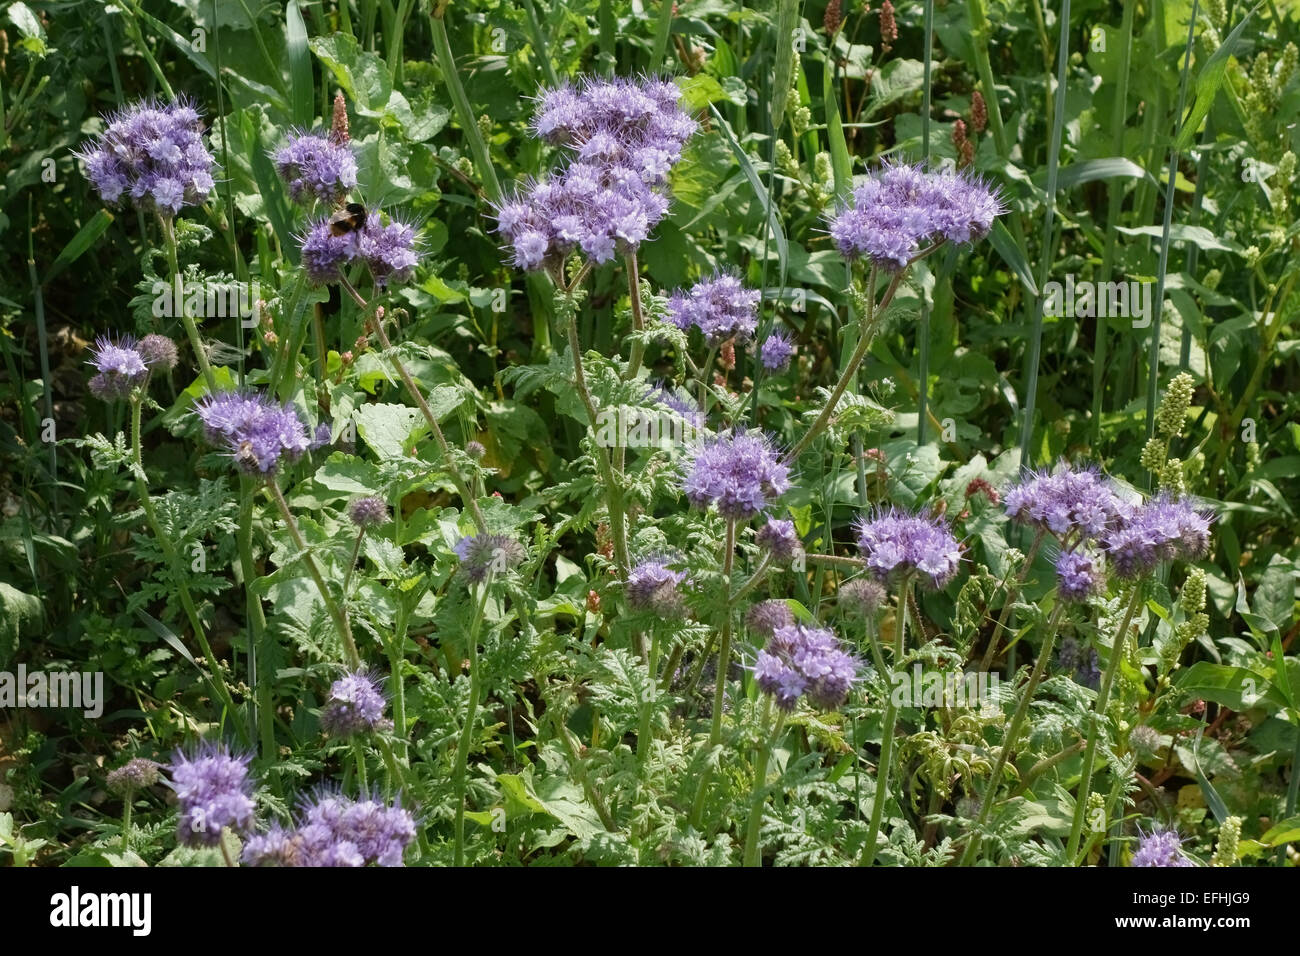 Blue flowers of phacelia, Phacelia tanacetifolia, in a wild flower strip used to attract predators to arable crops, - Stock Image